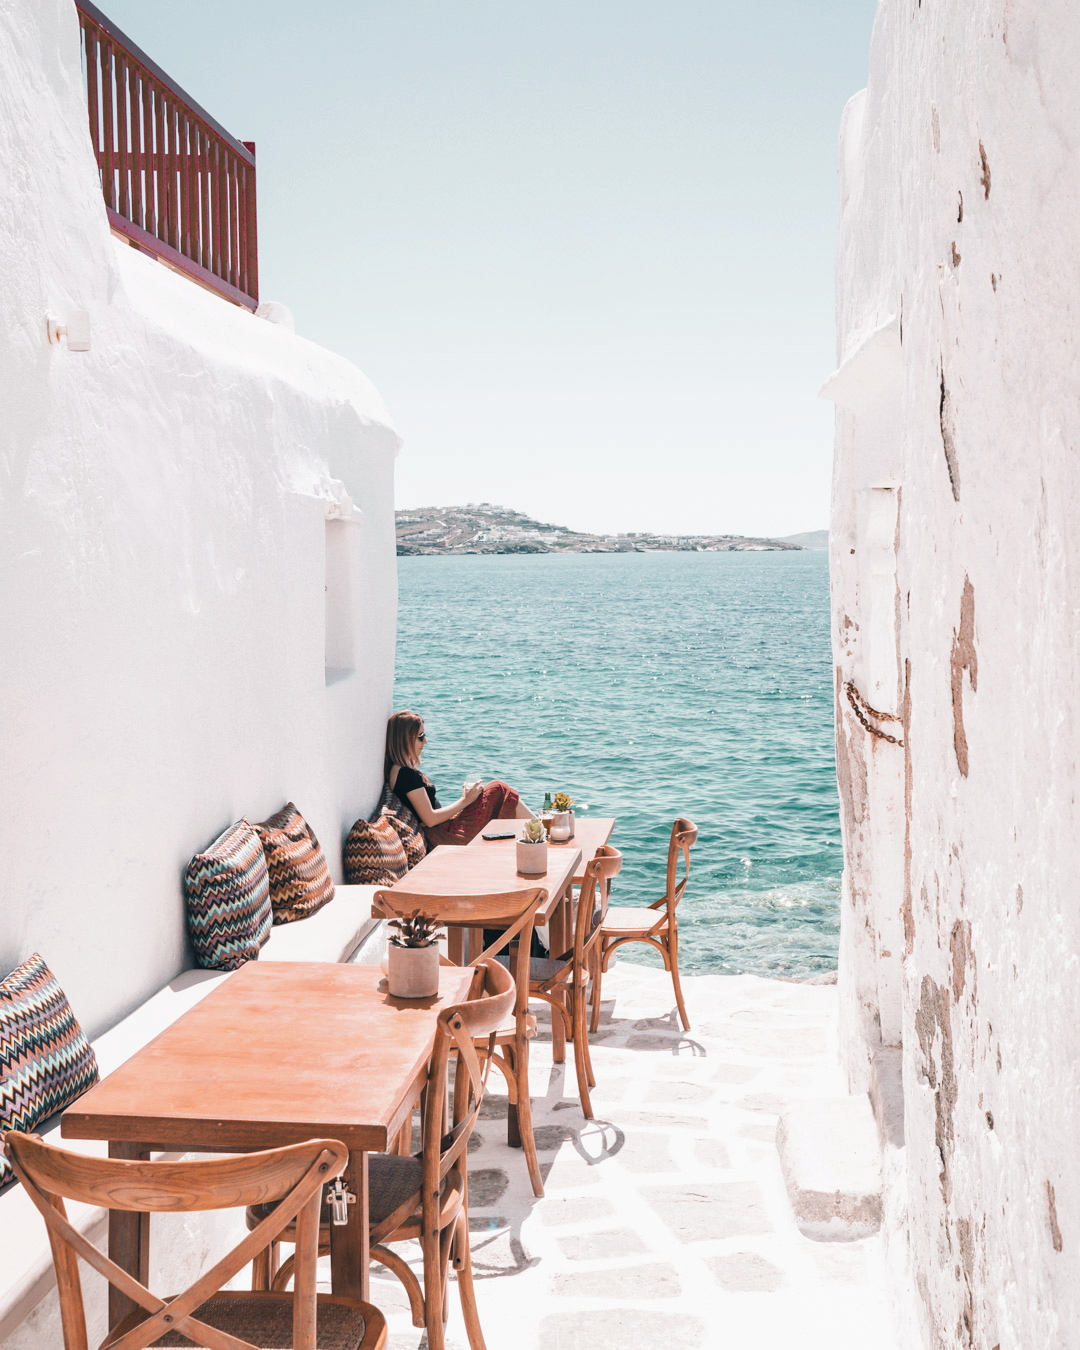 48 HOURS IN MYKONOS TOWN – what to see